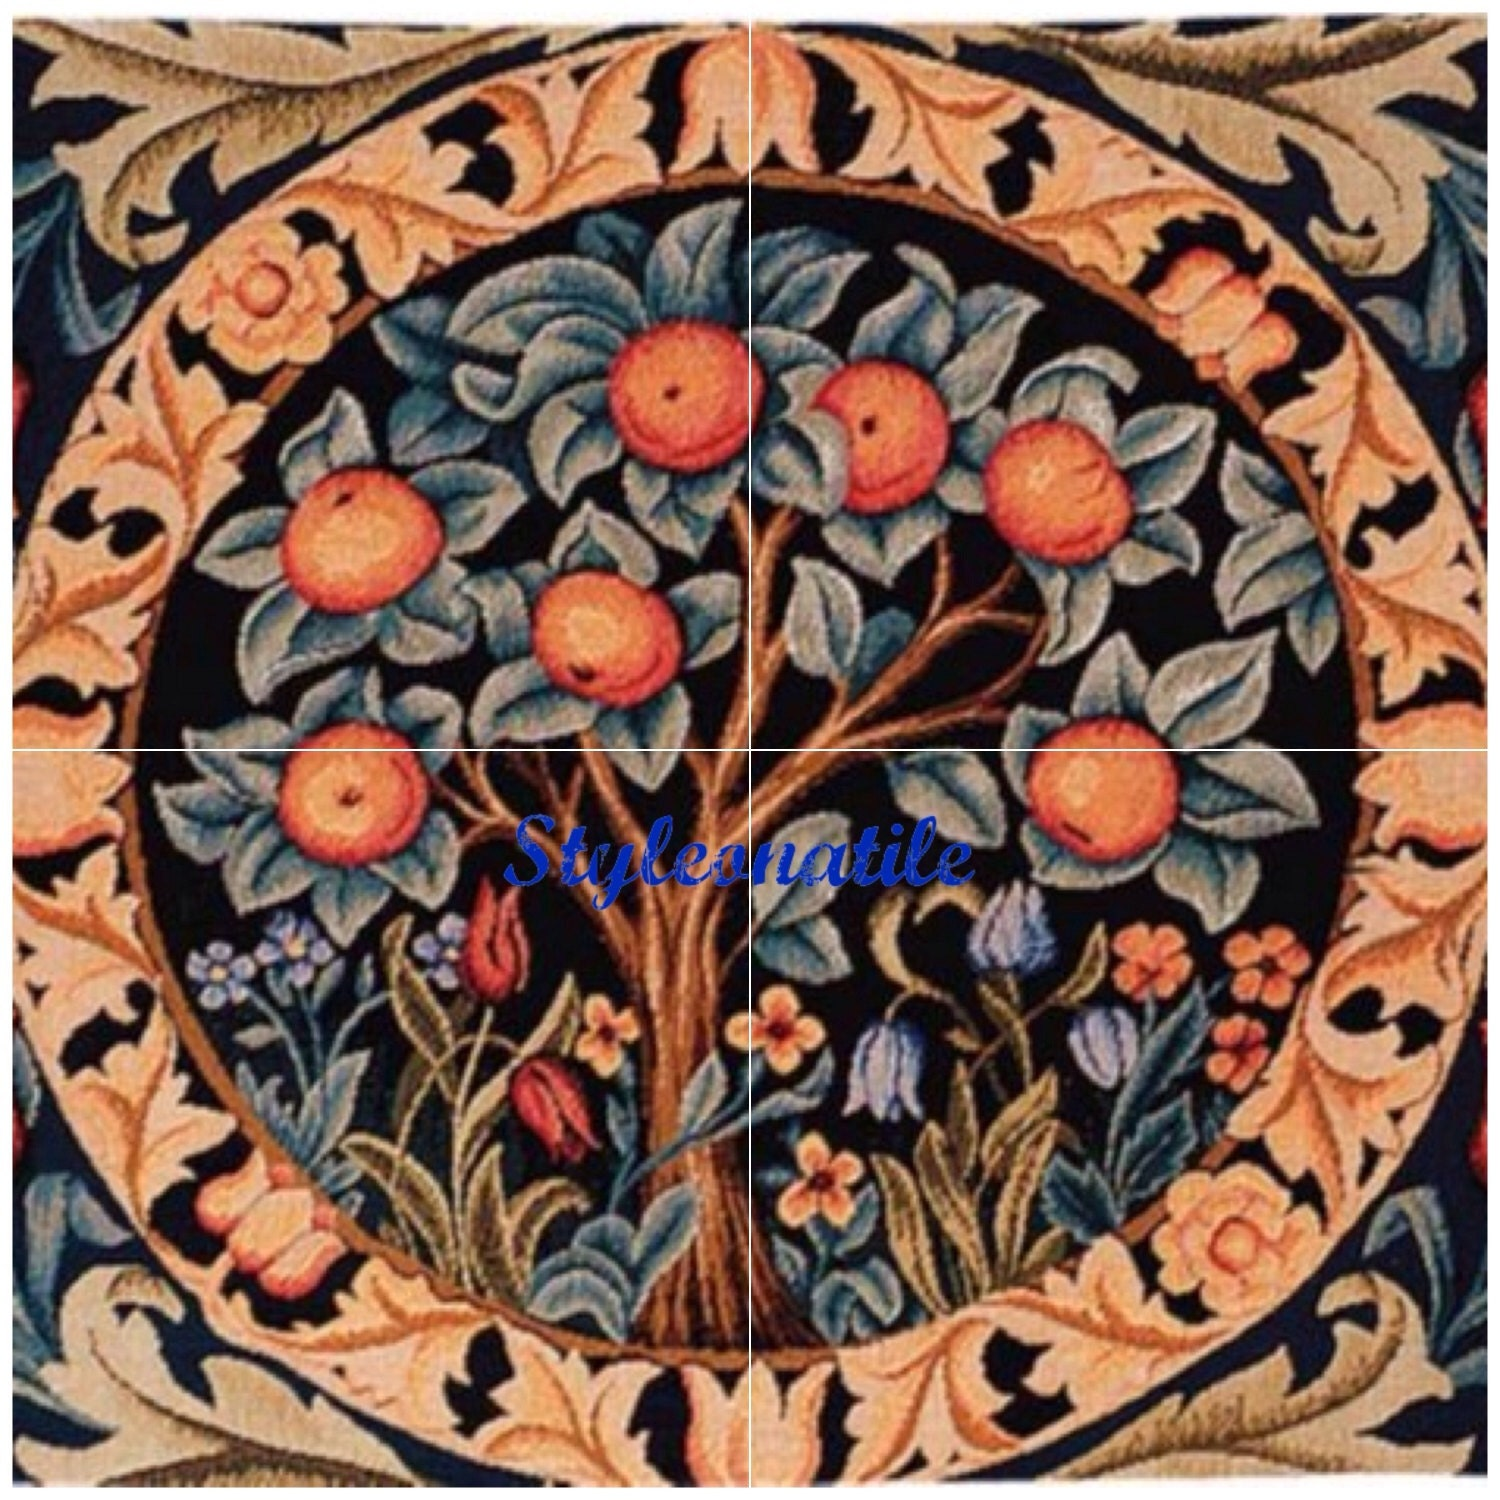 Lovely william morris orange tree 4 x 6 or 152mm ceramic tile lovely william morris orange tree 4 x 6 or 152mm ceramic tile mural mosaic wall art splash back dailygadgetfo Image collections